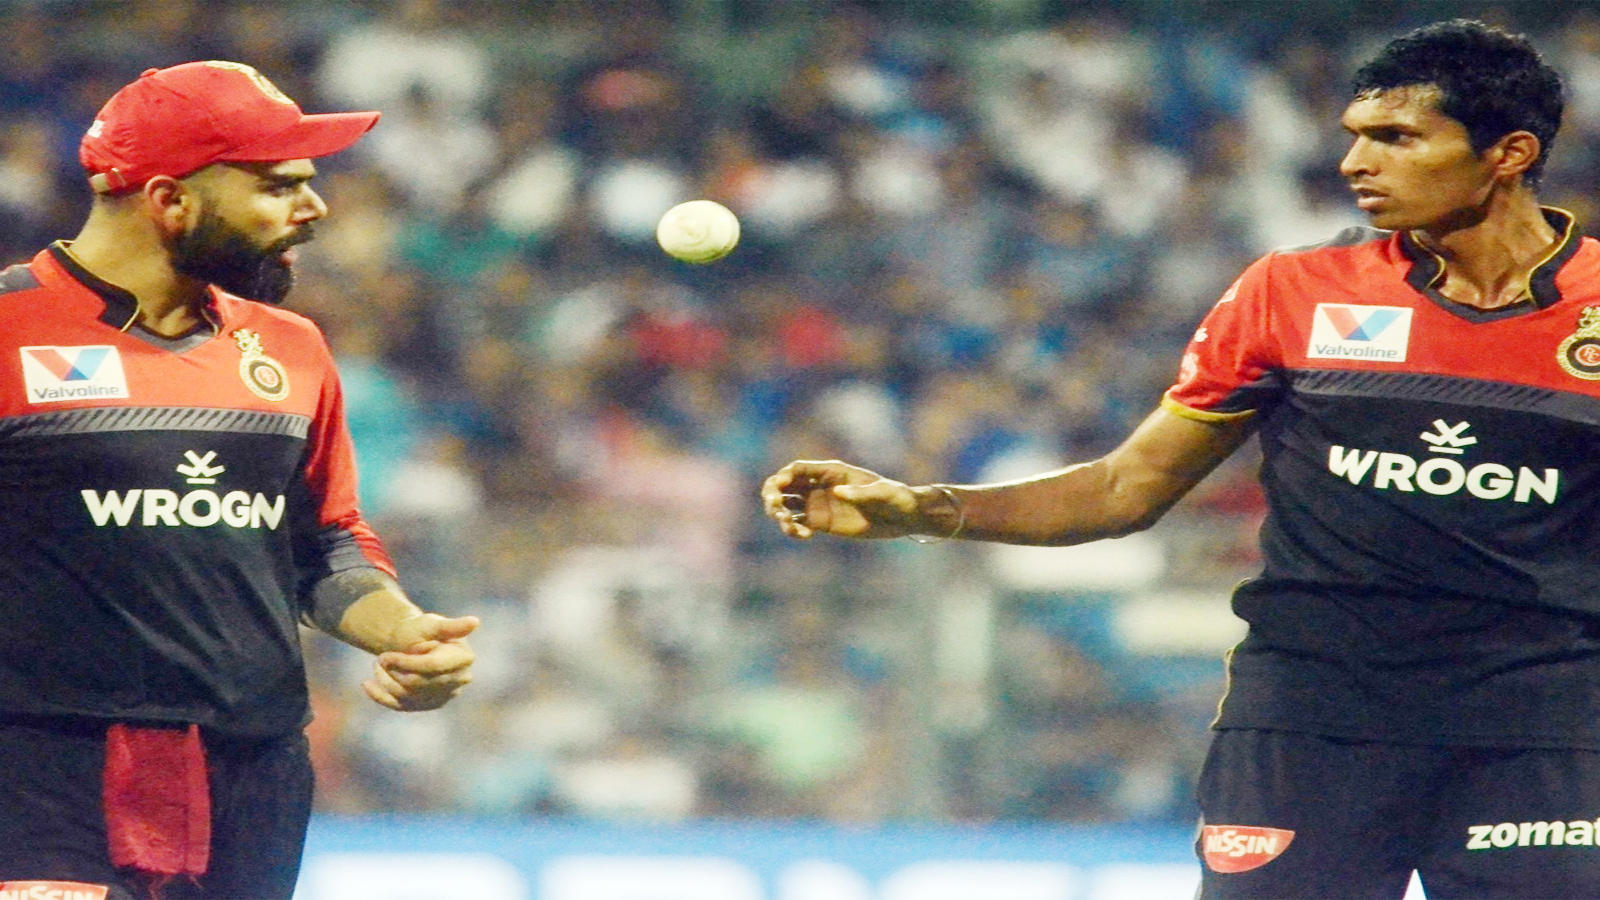 ipl-2020-rcb-vs-mi-outstanding-super-over-from-navdeep-saini-says-virat-kohli